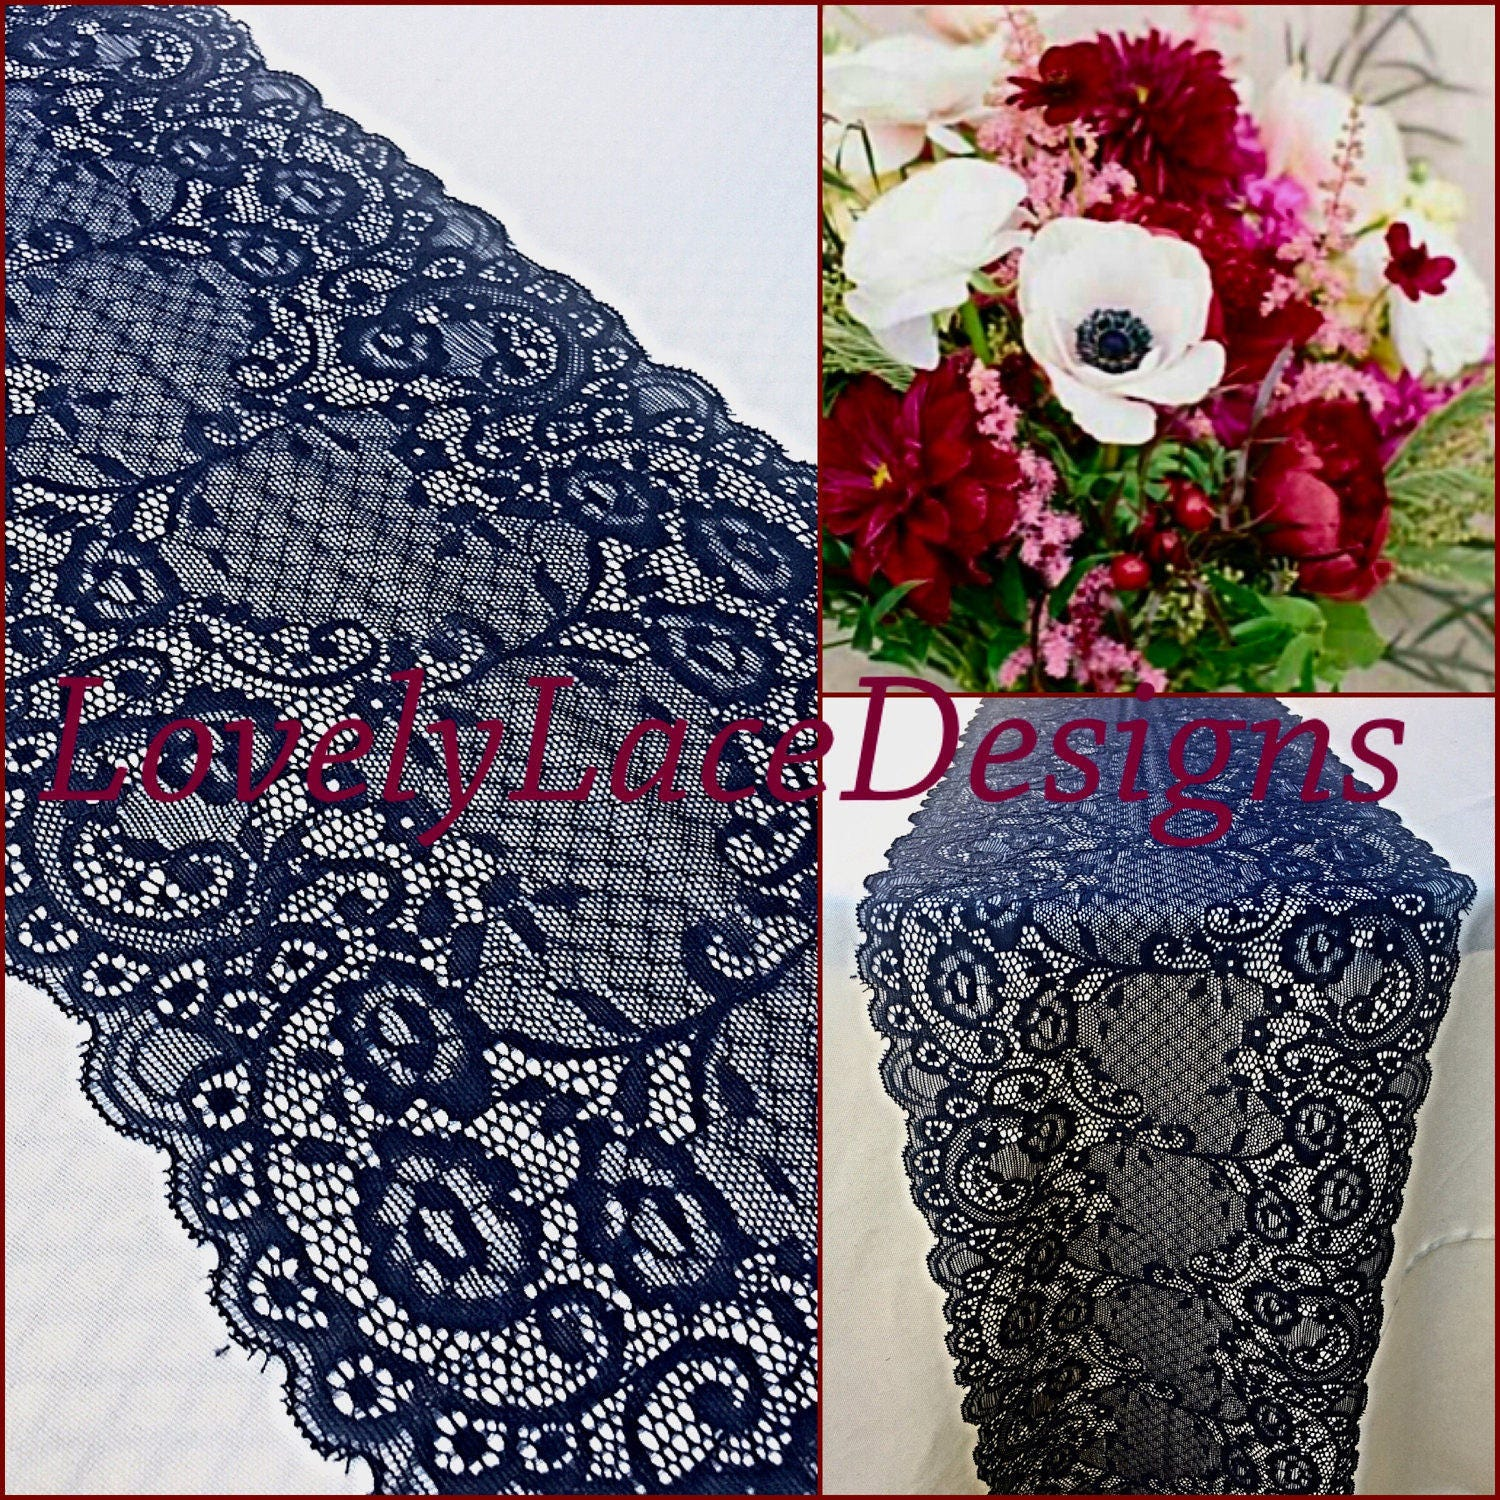 NAVY BLUE Lace/Table Runner/12ft 20ft Long X 8.25 Wide/Wedding Decor/Table  Decor/NAVY/Centerpiece/Ends Cut Not Sewn/Free Runner